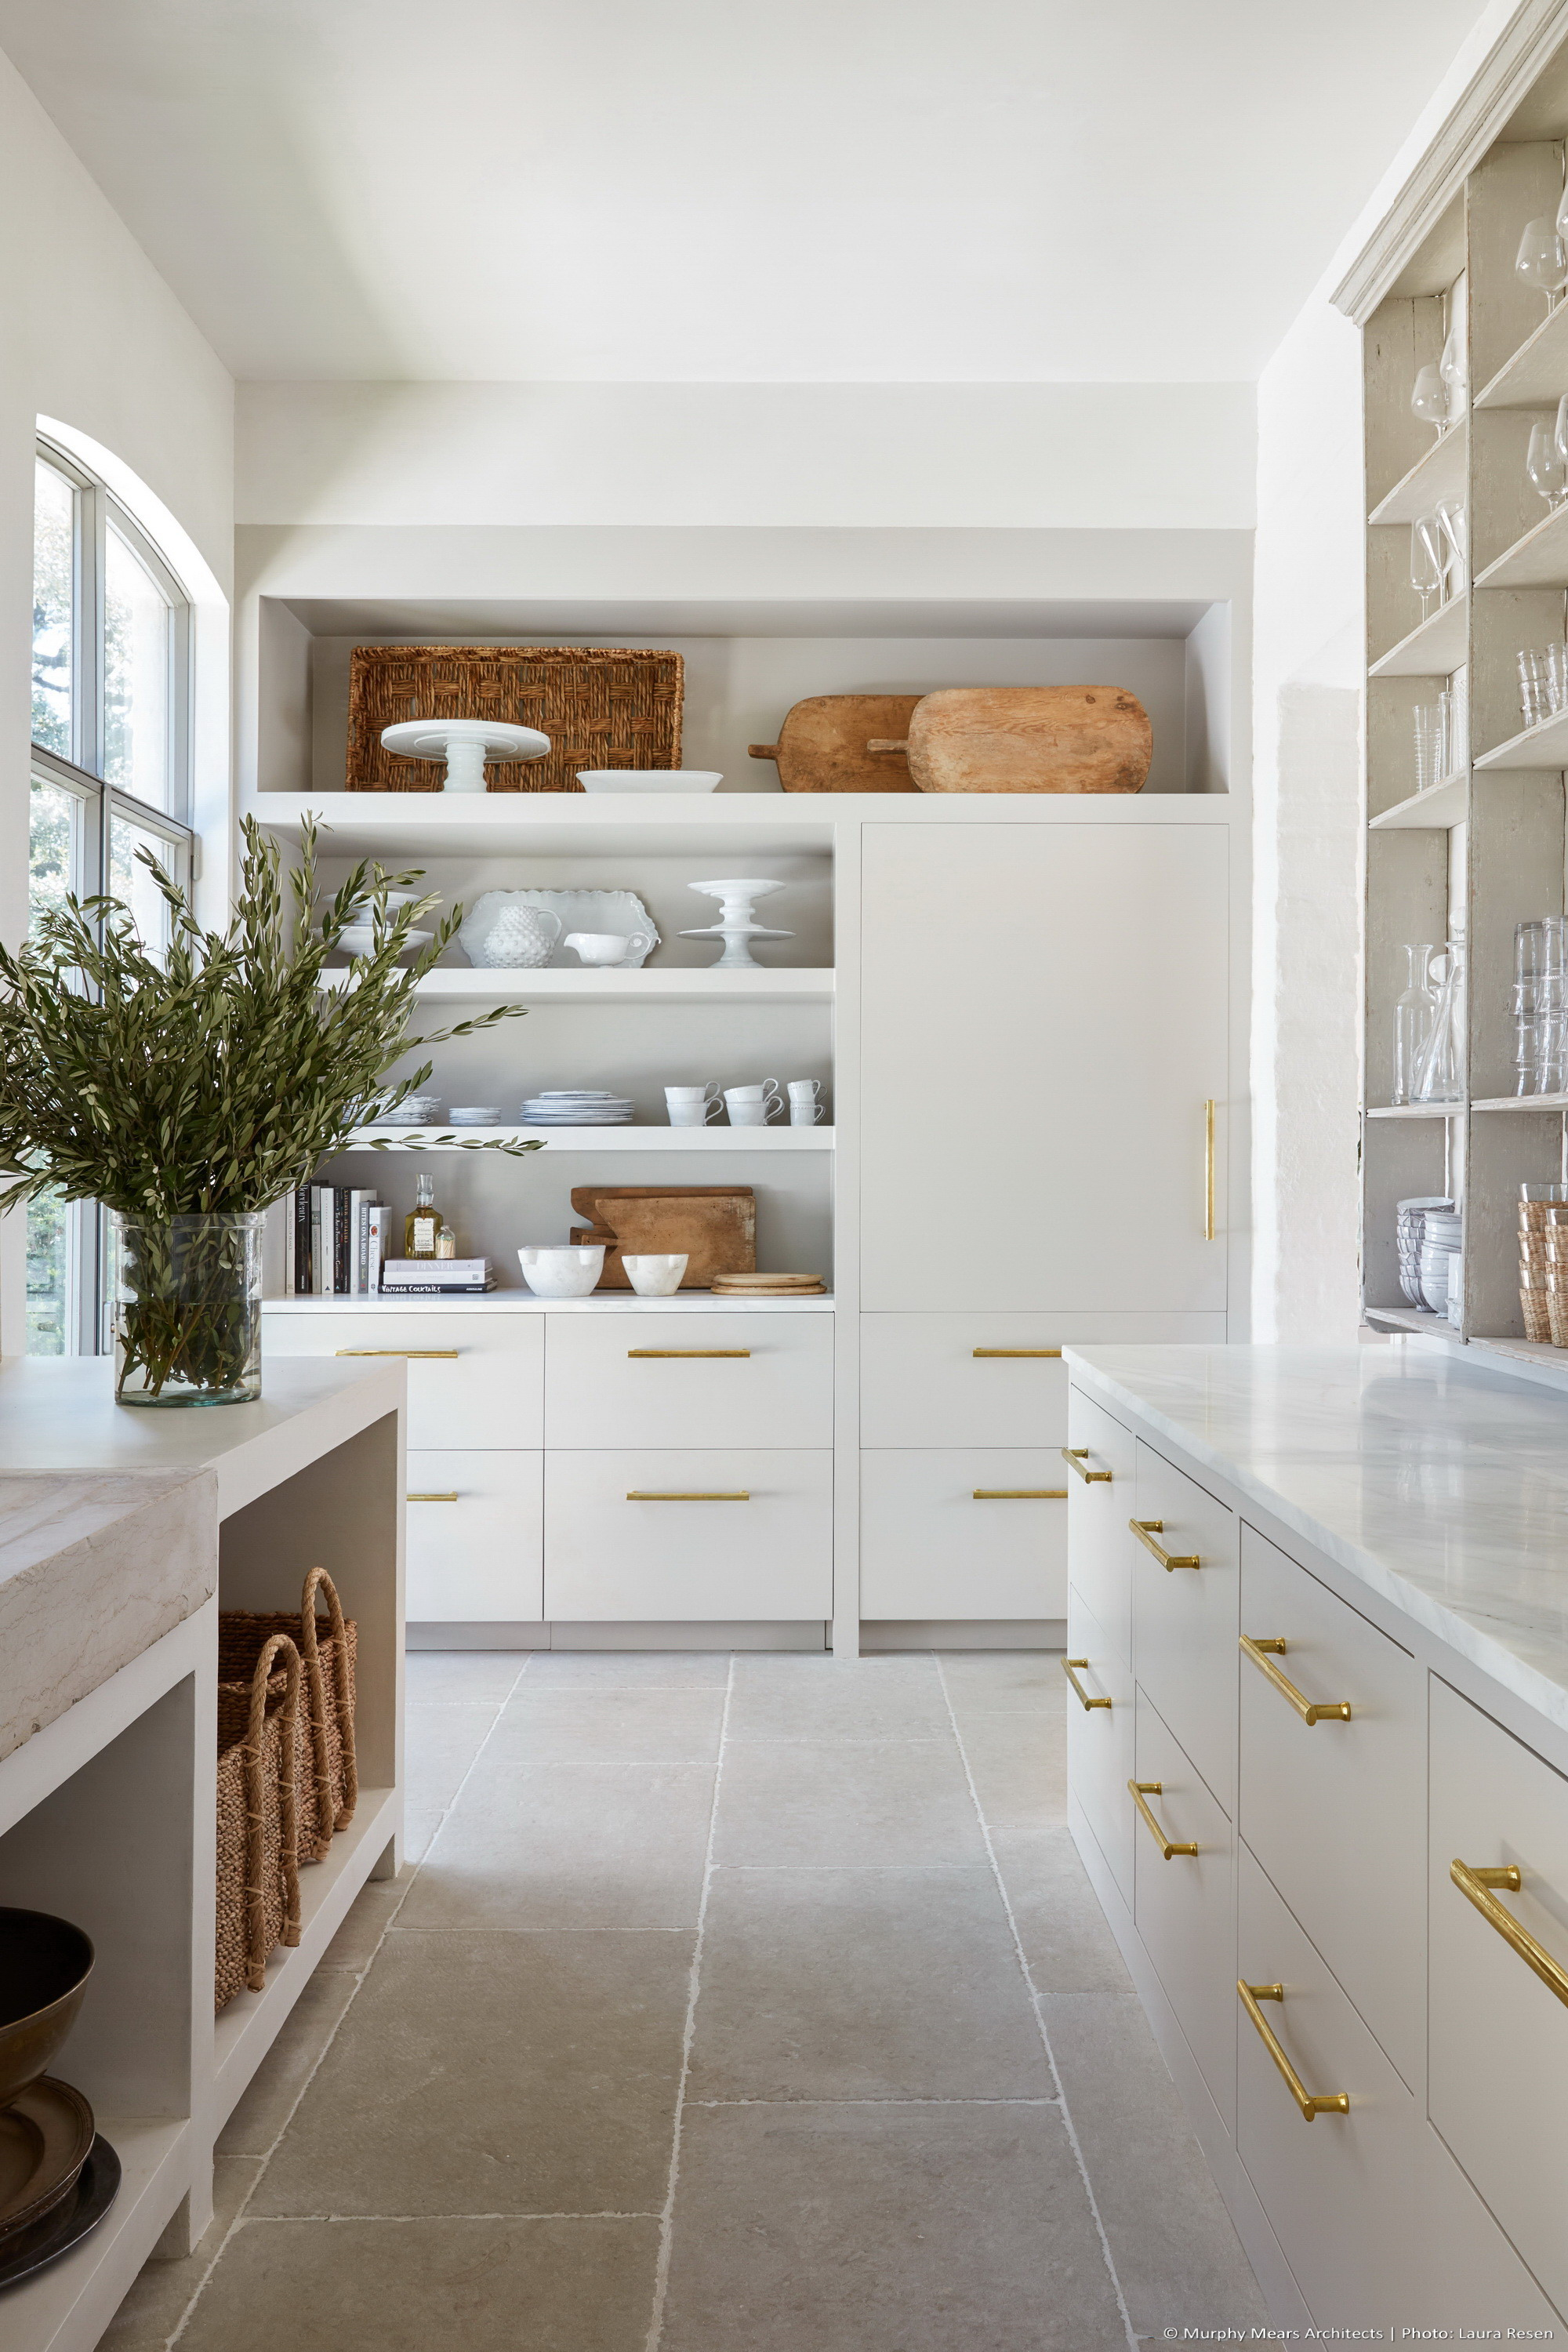 Scullery off the main kitchen, with storage, prep and cleaning areas.